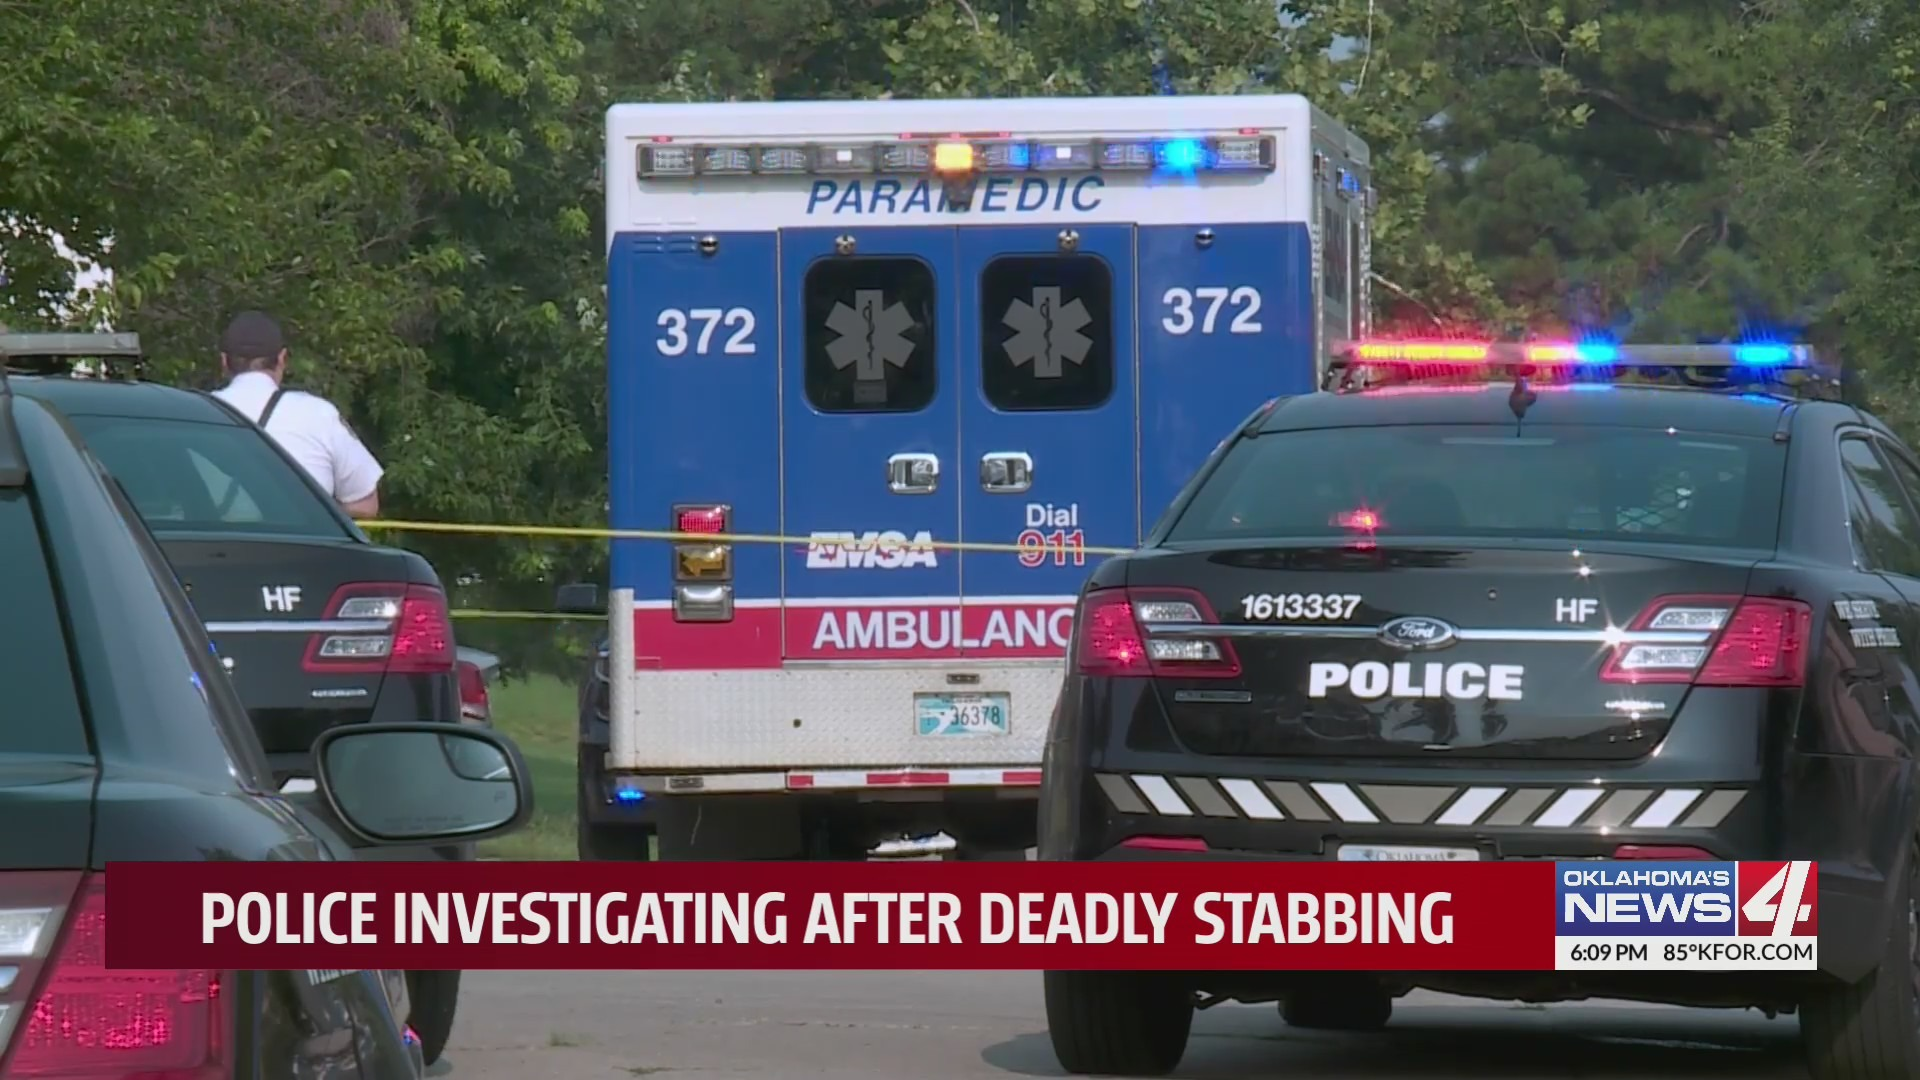 The scene of an early morning stabbing in Oklahoma City.